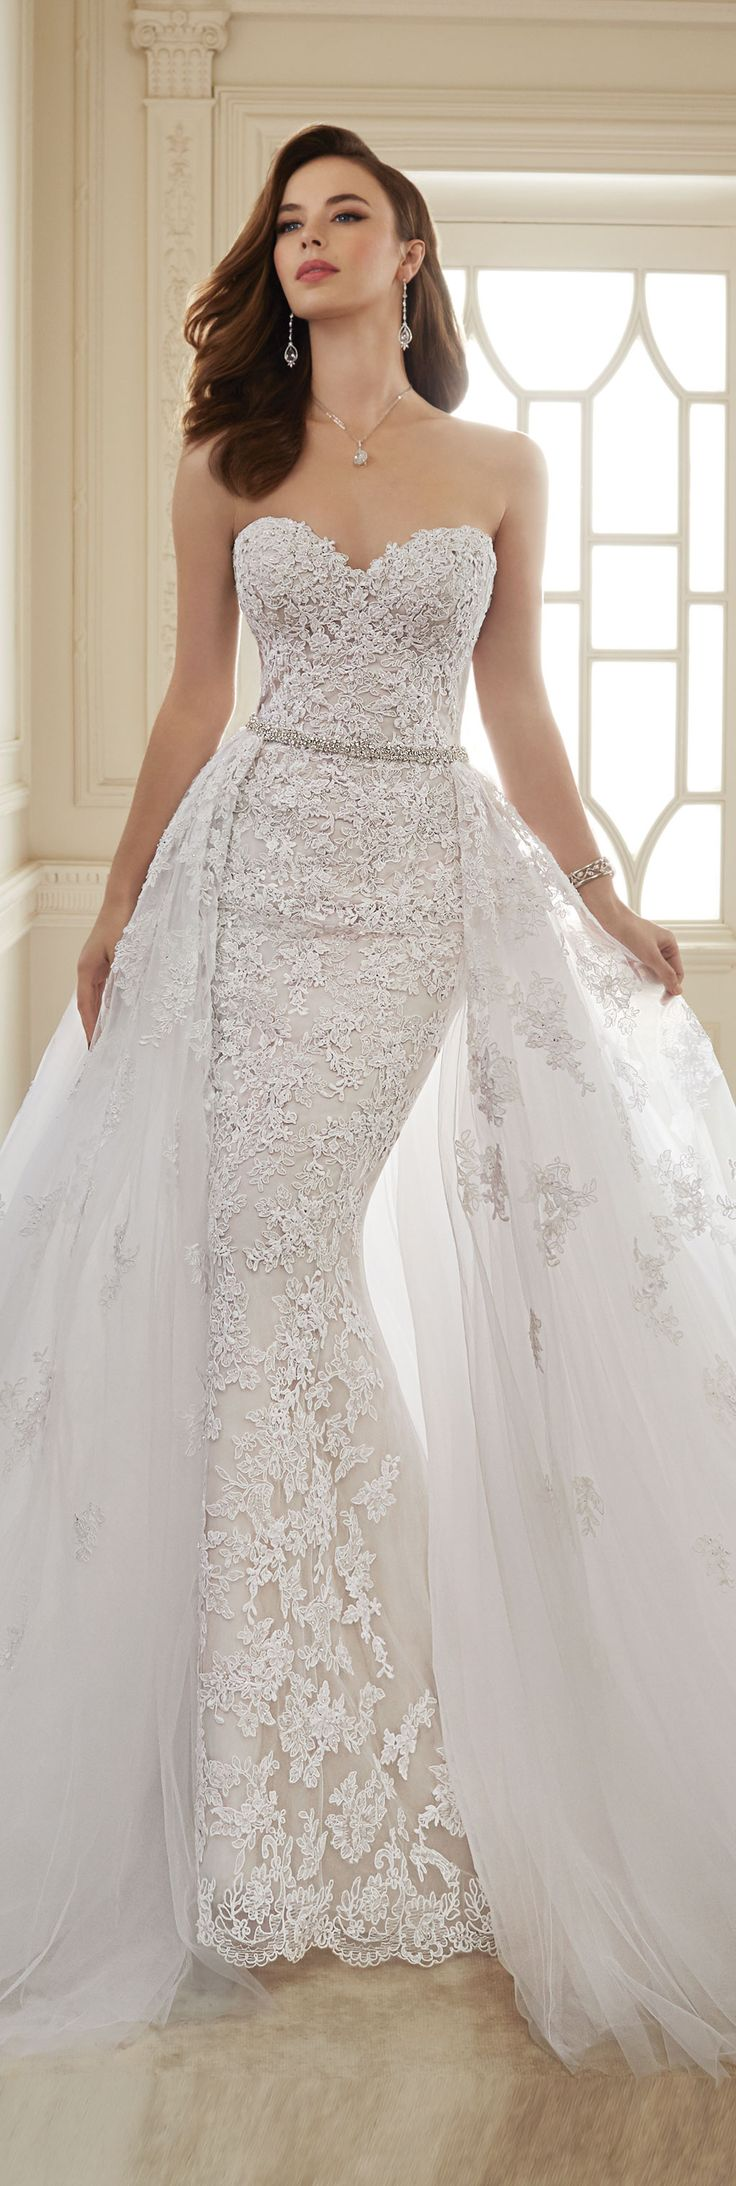 Wedding Dresses by Sophia Tolli - Spring 2016 Collection - Style No. Y11652 - Maeve #detachableskirtweddingdress